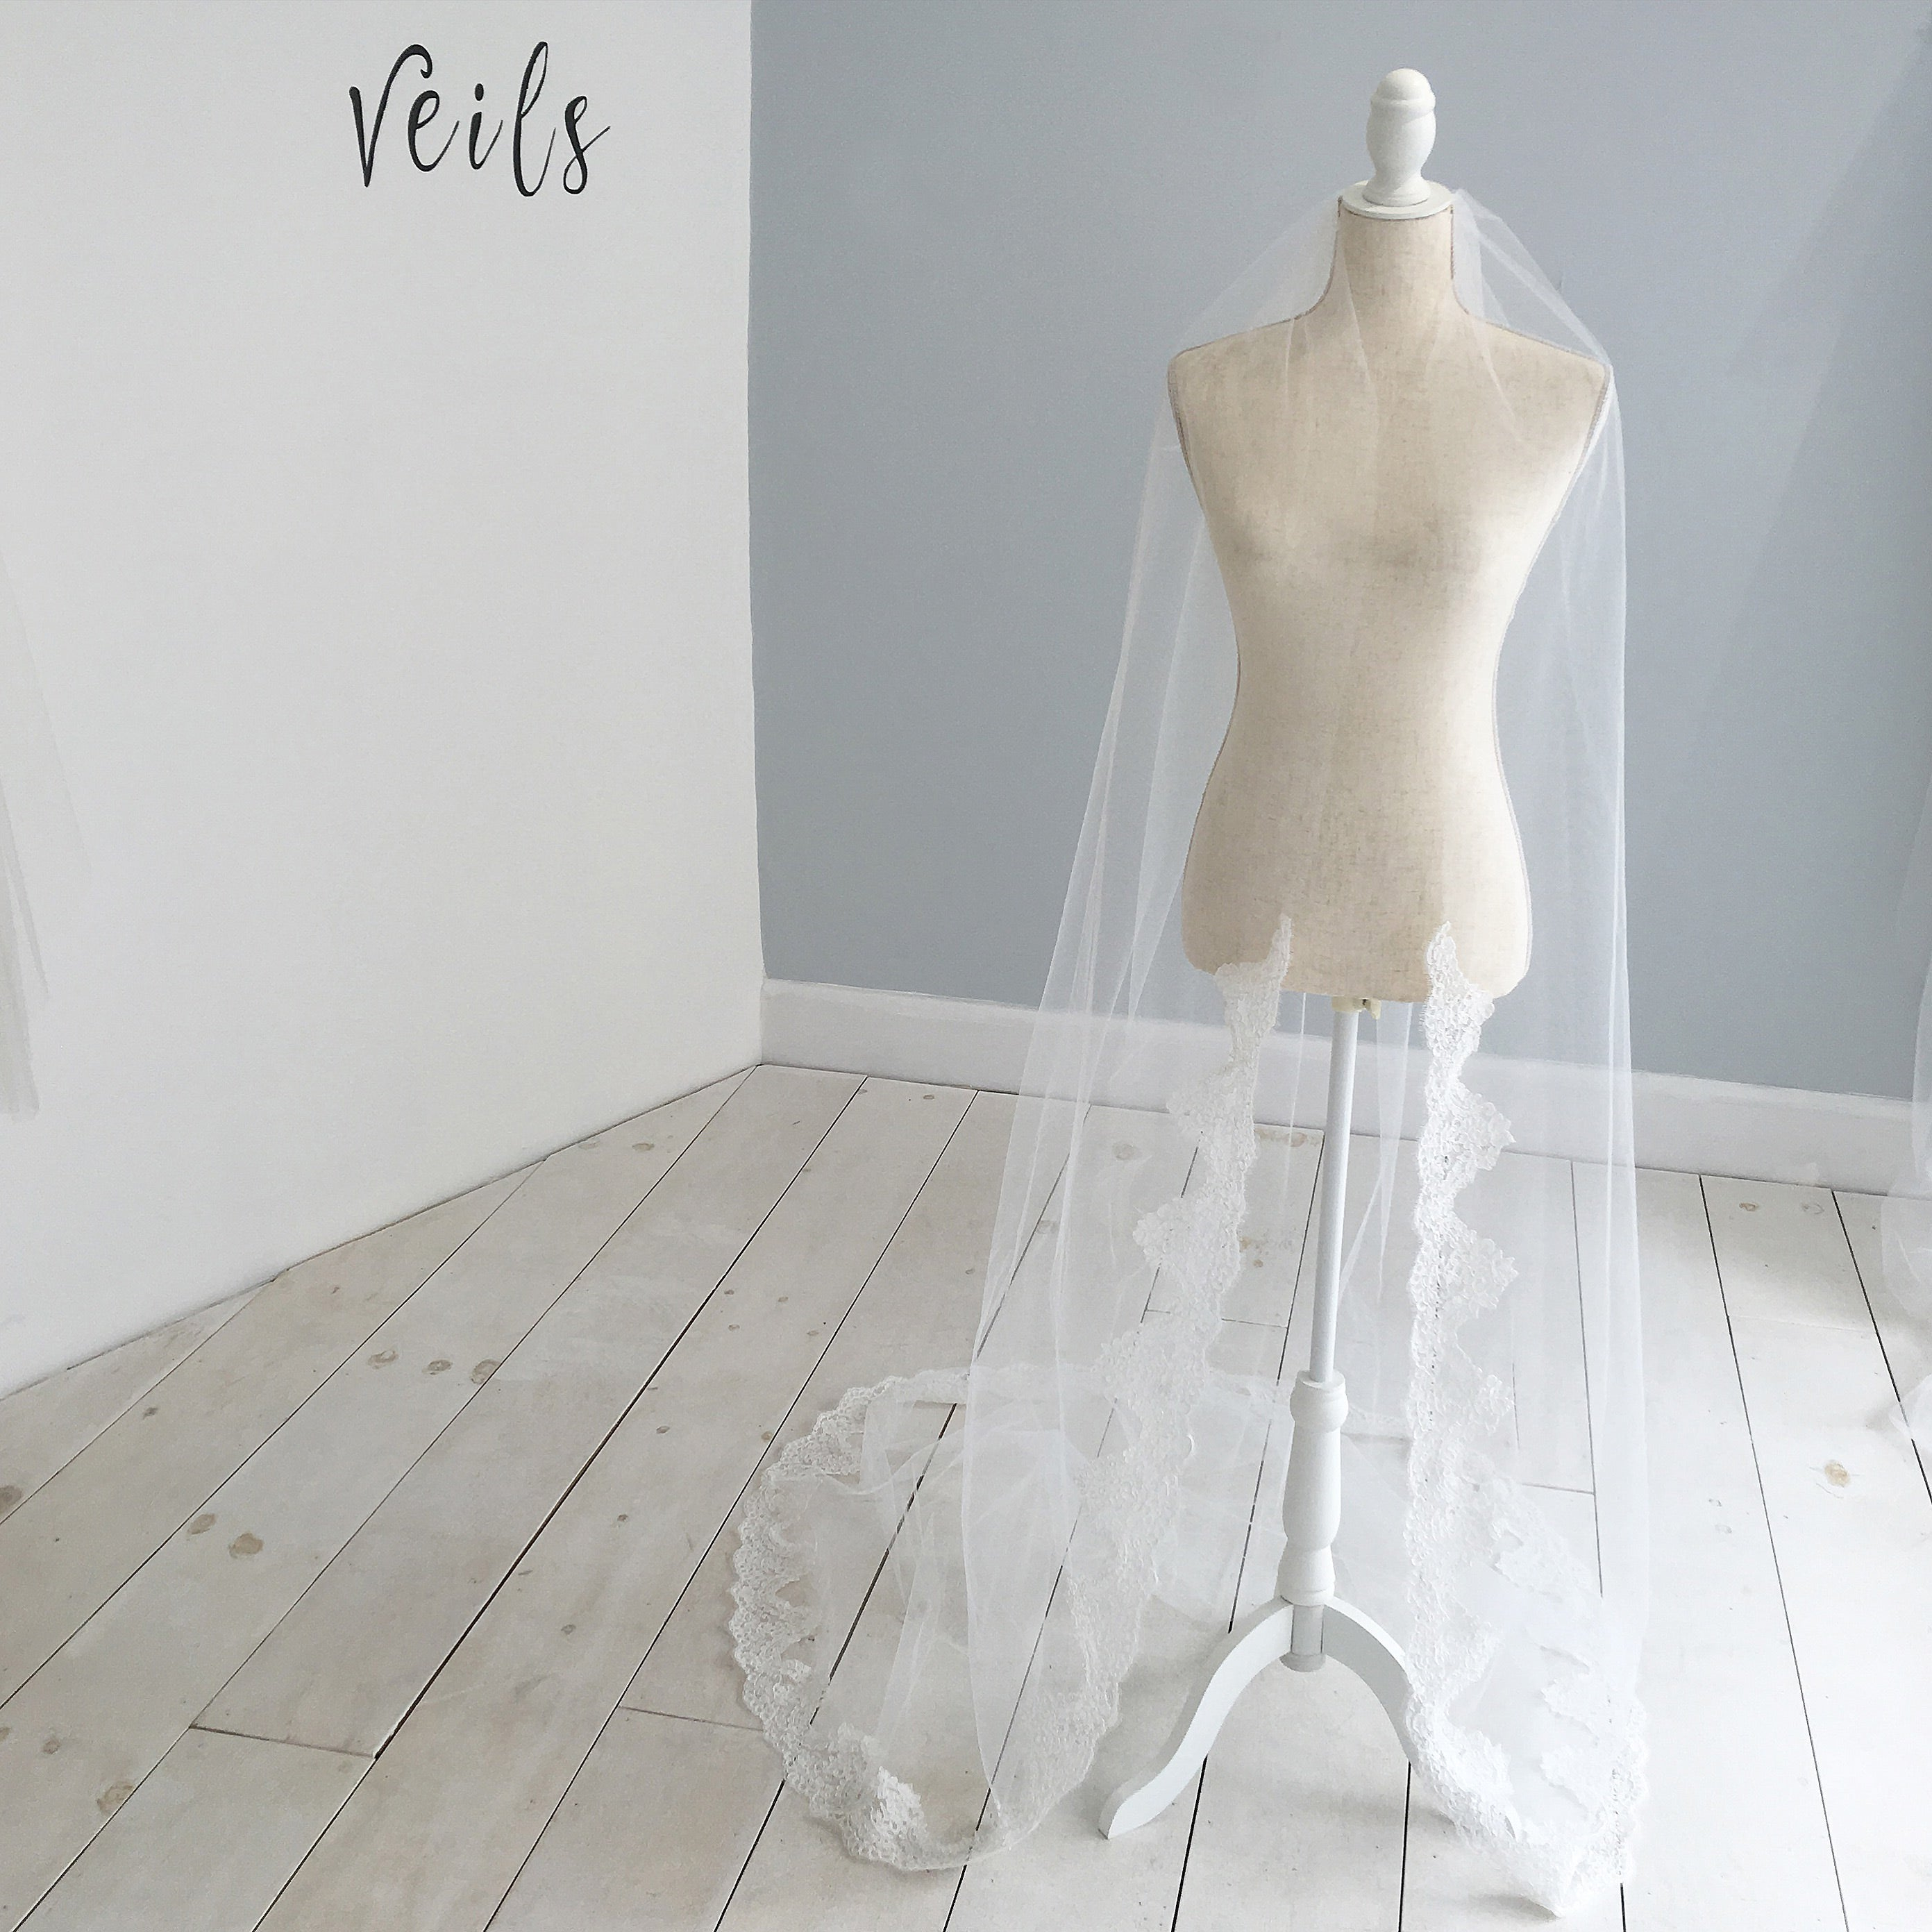 bespoke custom wedding veil for charlie brear dress